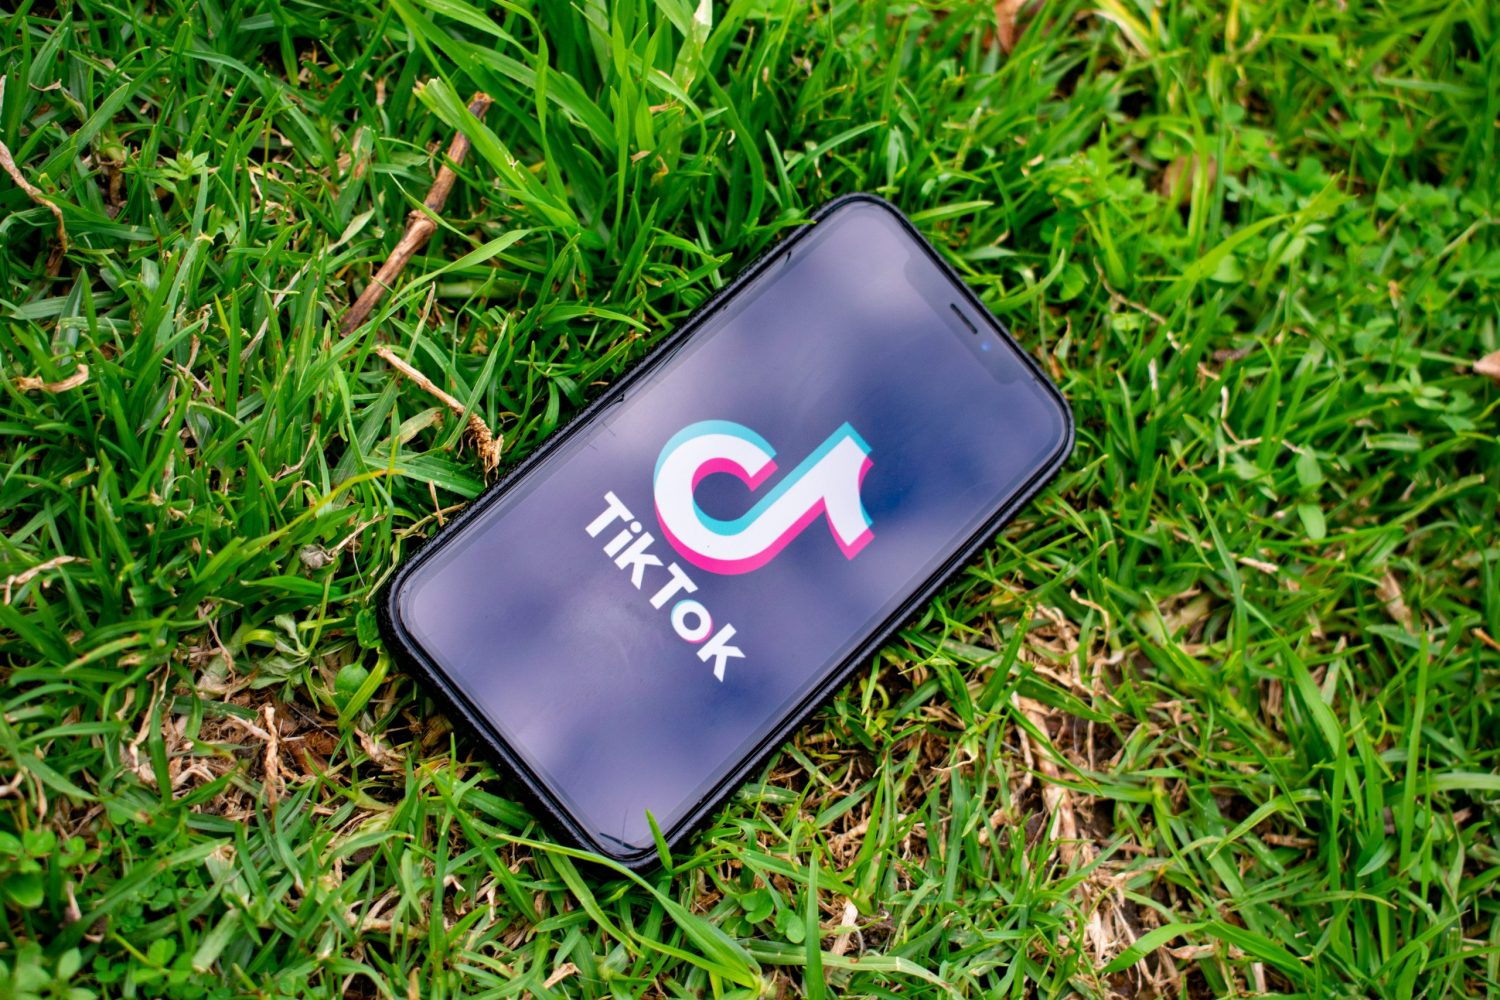 iPhone displaying the TikTok app